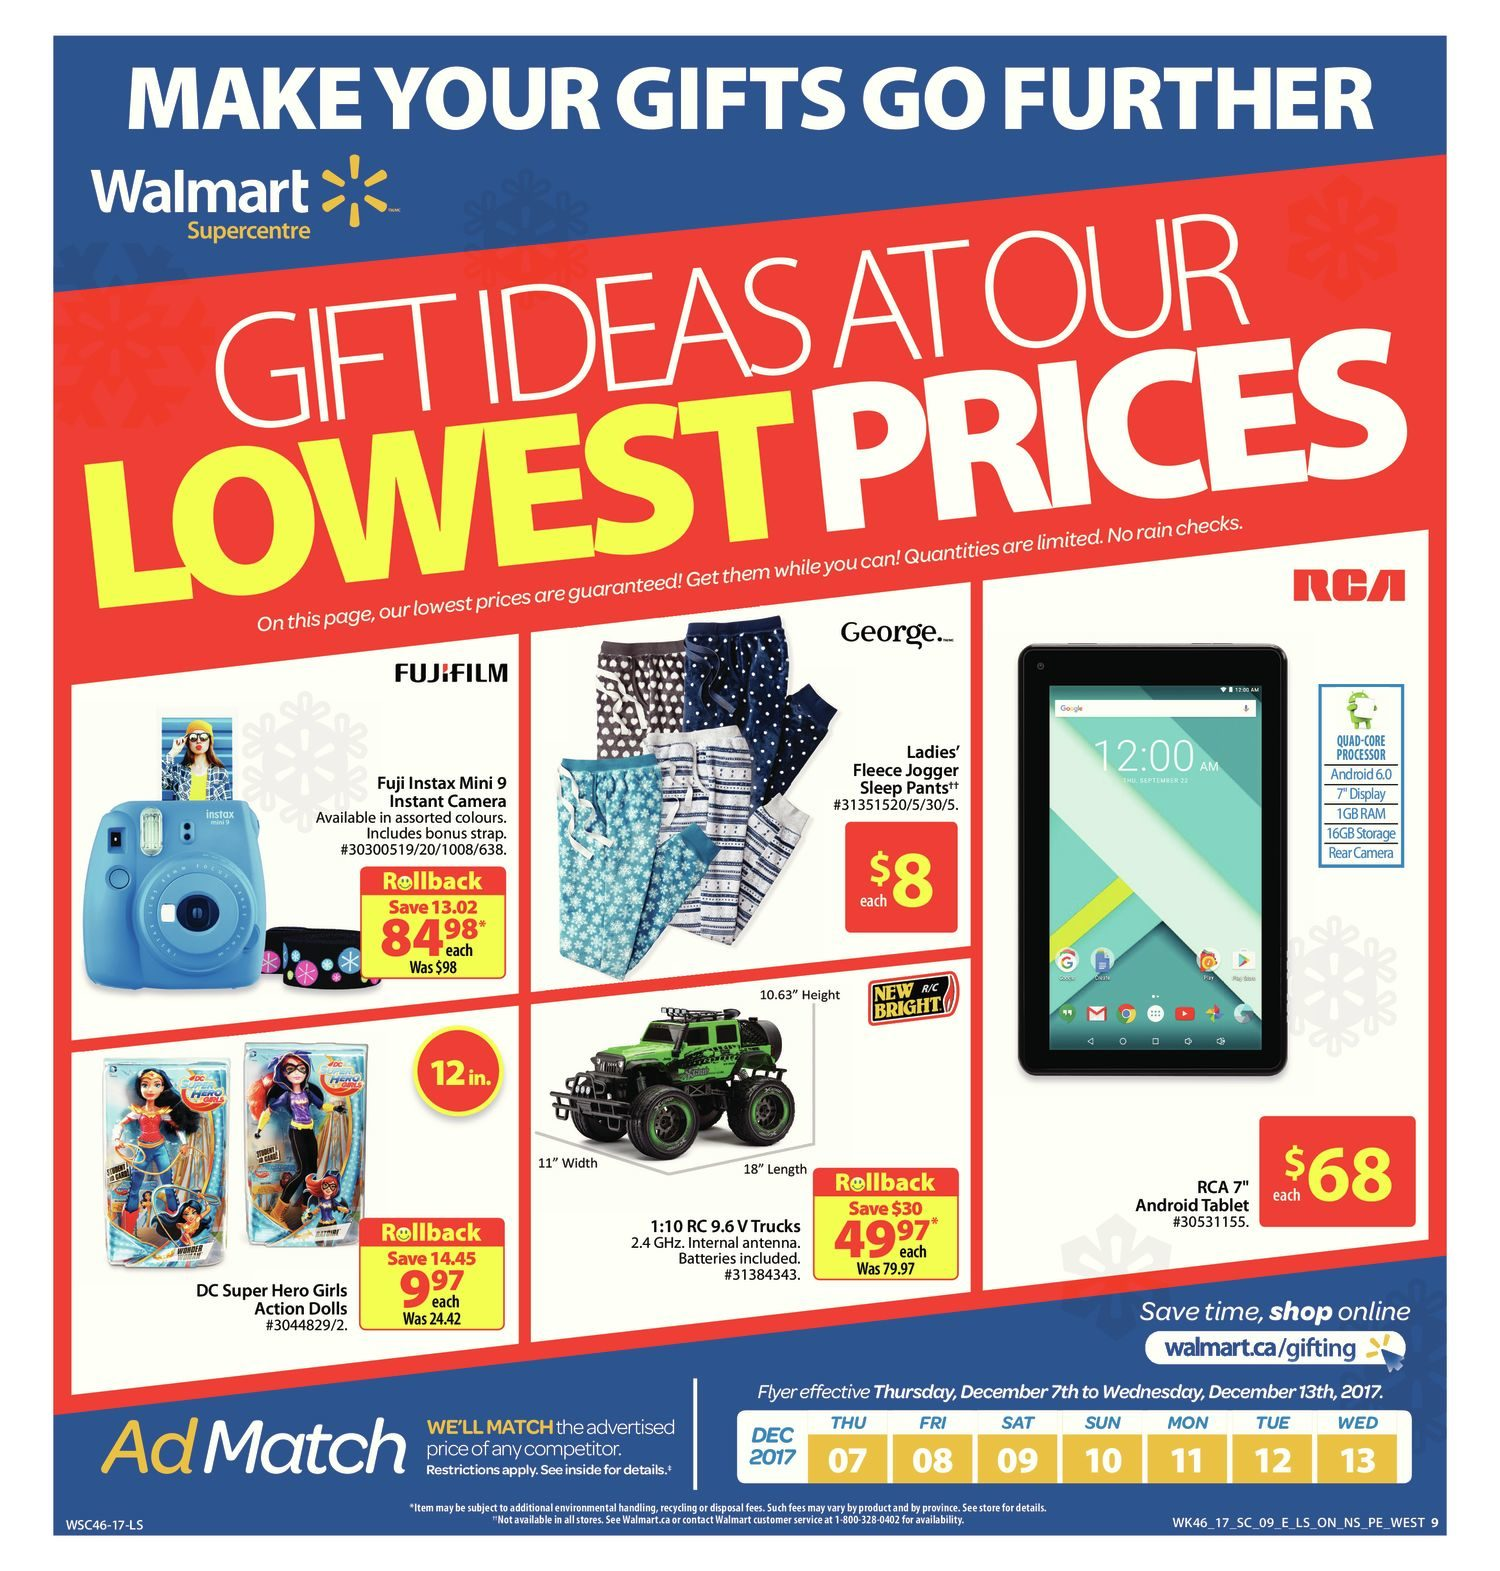 Walmart Weekly Flyer - Supercentre - The Lowest Price is Everything